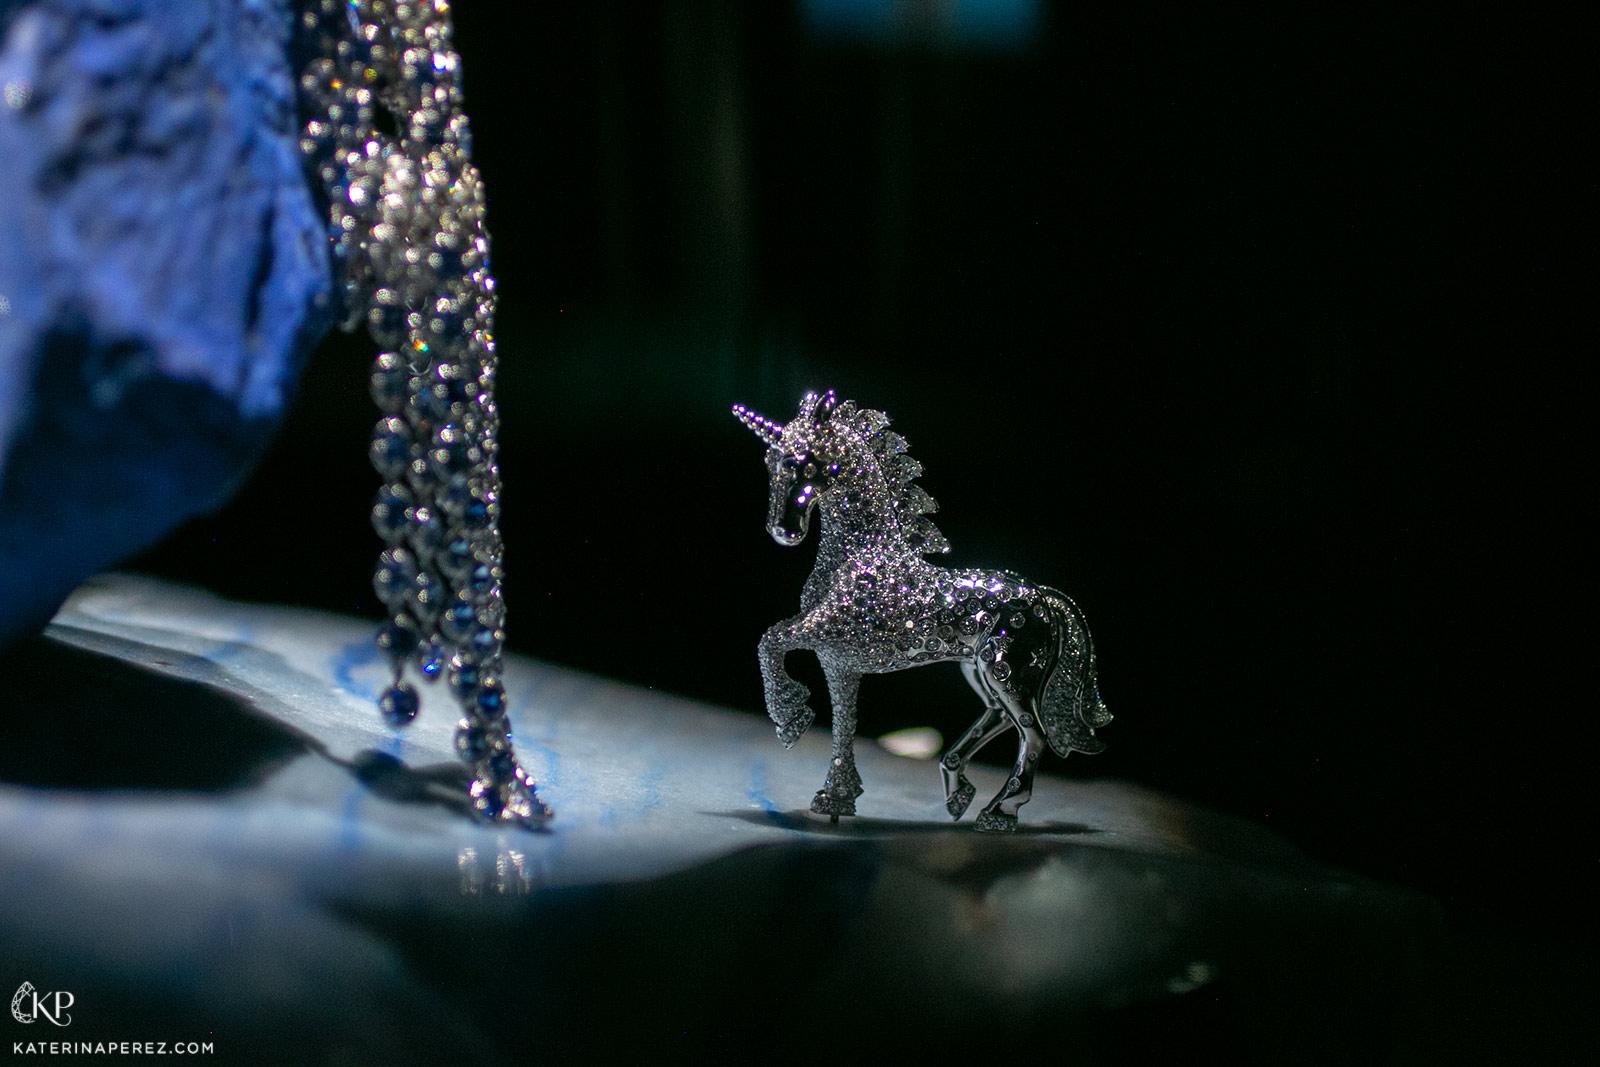 The body of the white gold unicorn shines with round diamonds, while its mane is formed of glittering pear shape diamonds